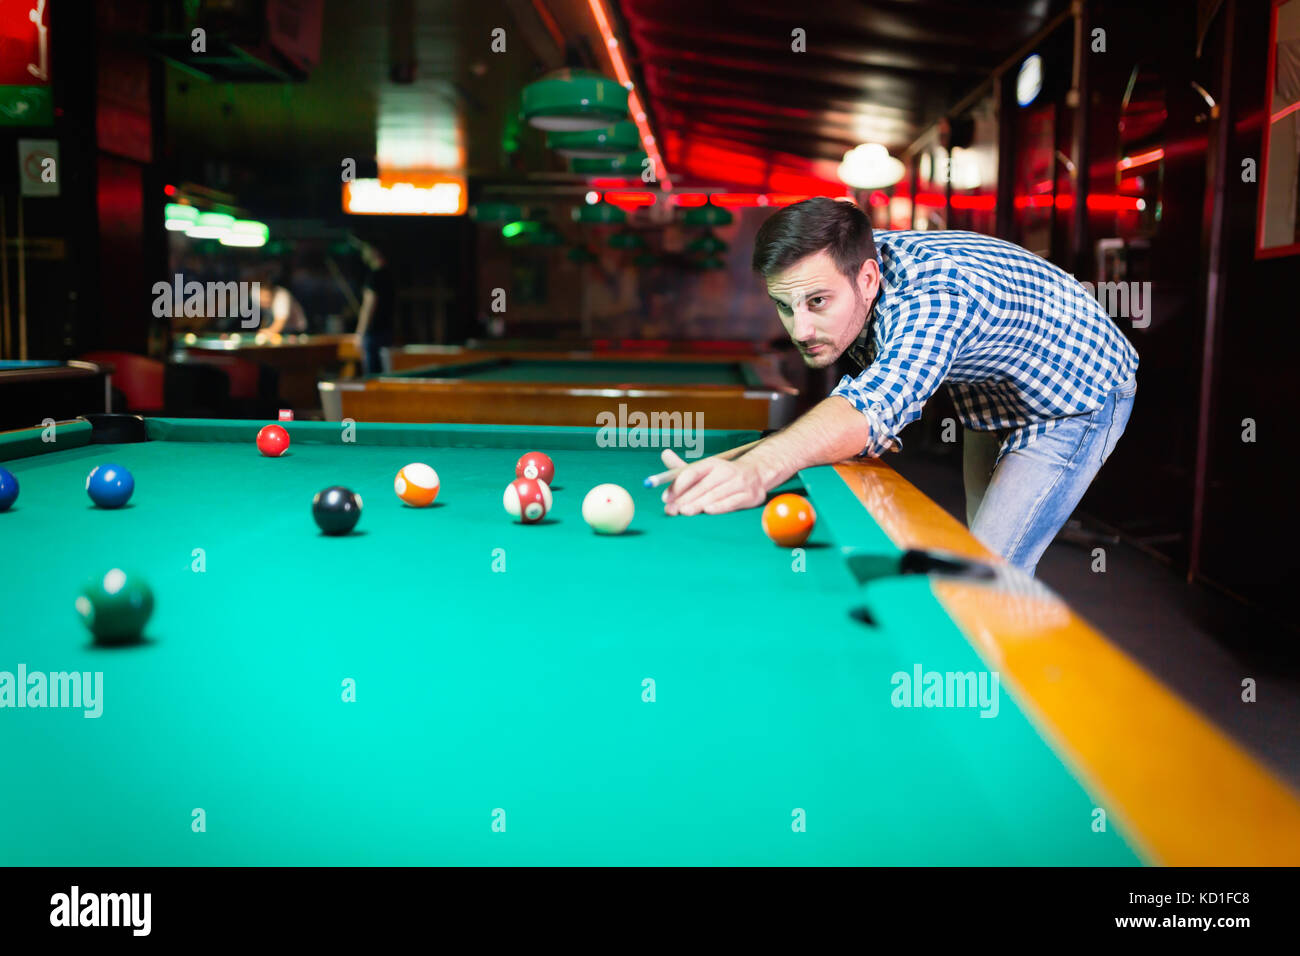 Hansome man playing pool in bar alone - Stock Image